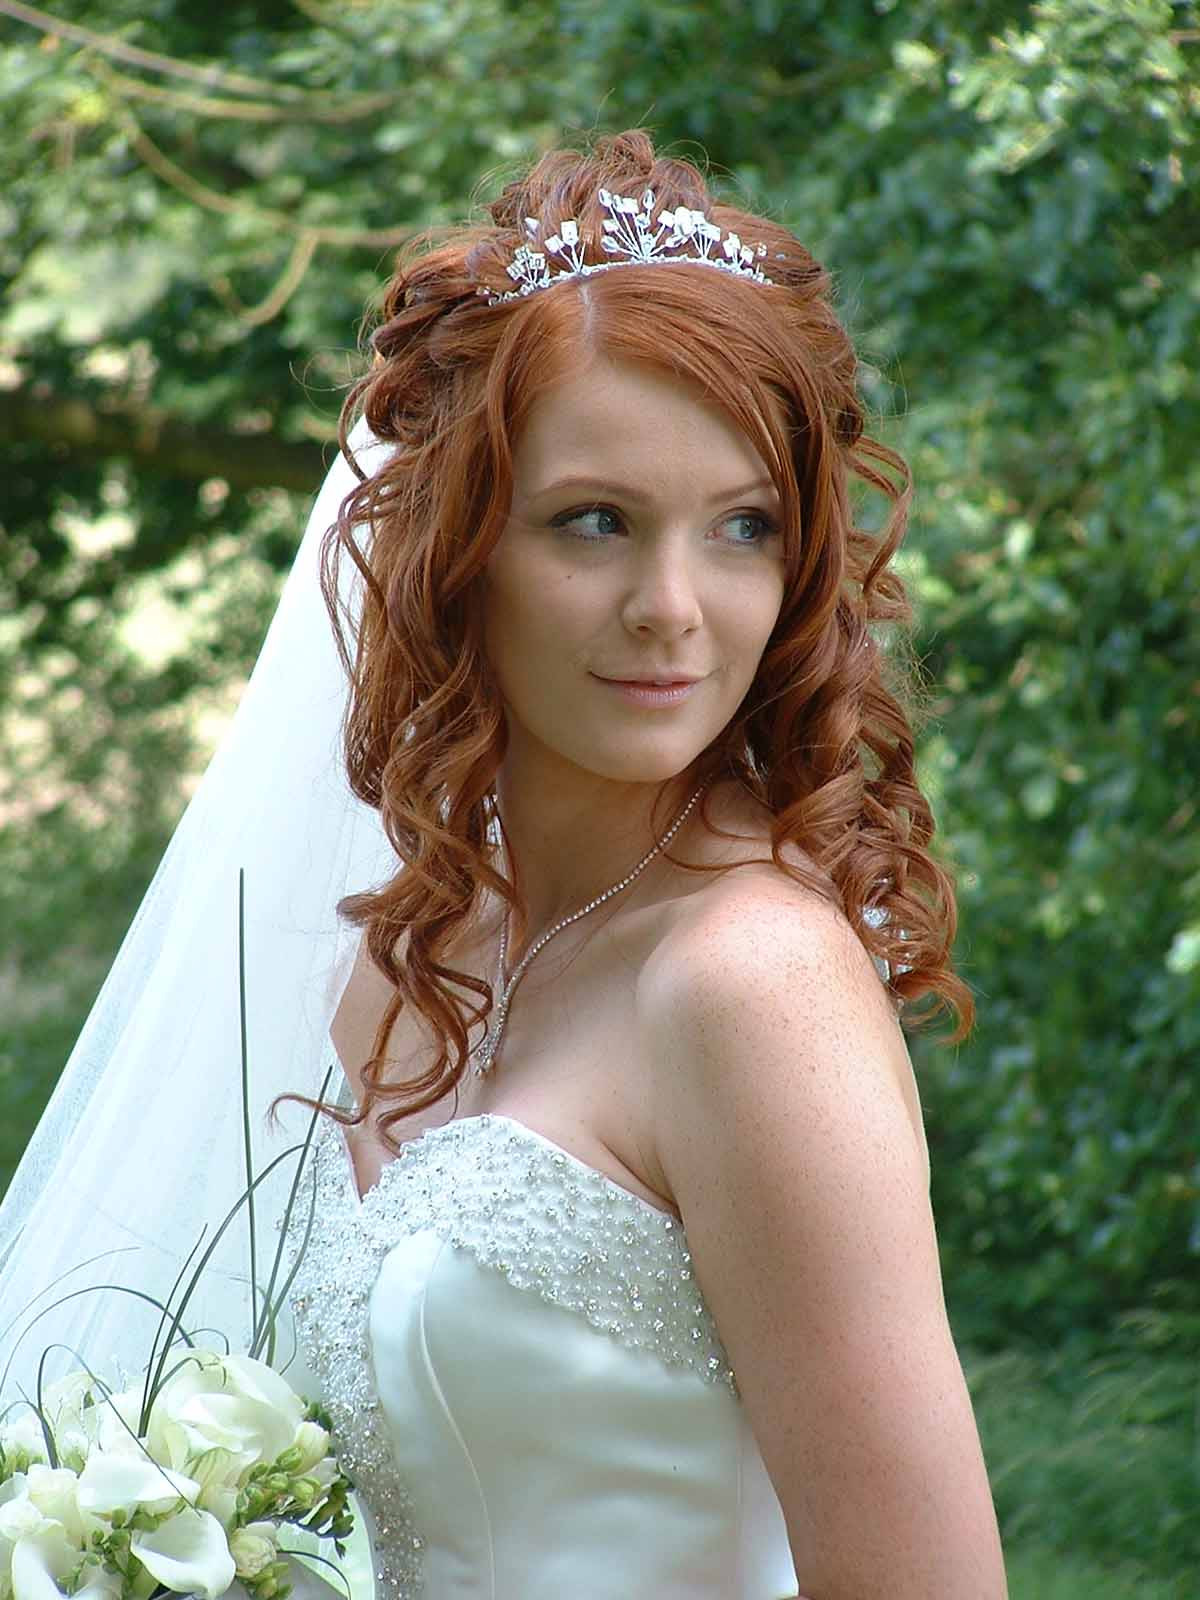 Best ideas about Brides Hairstyles . Save or Pin Bride Hairstyles Now.